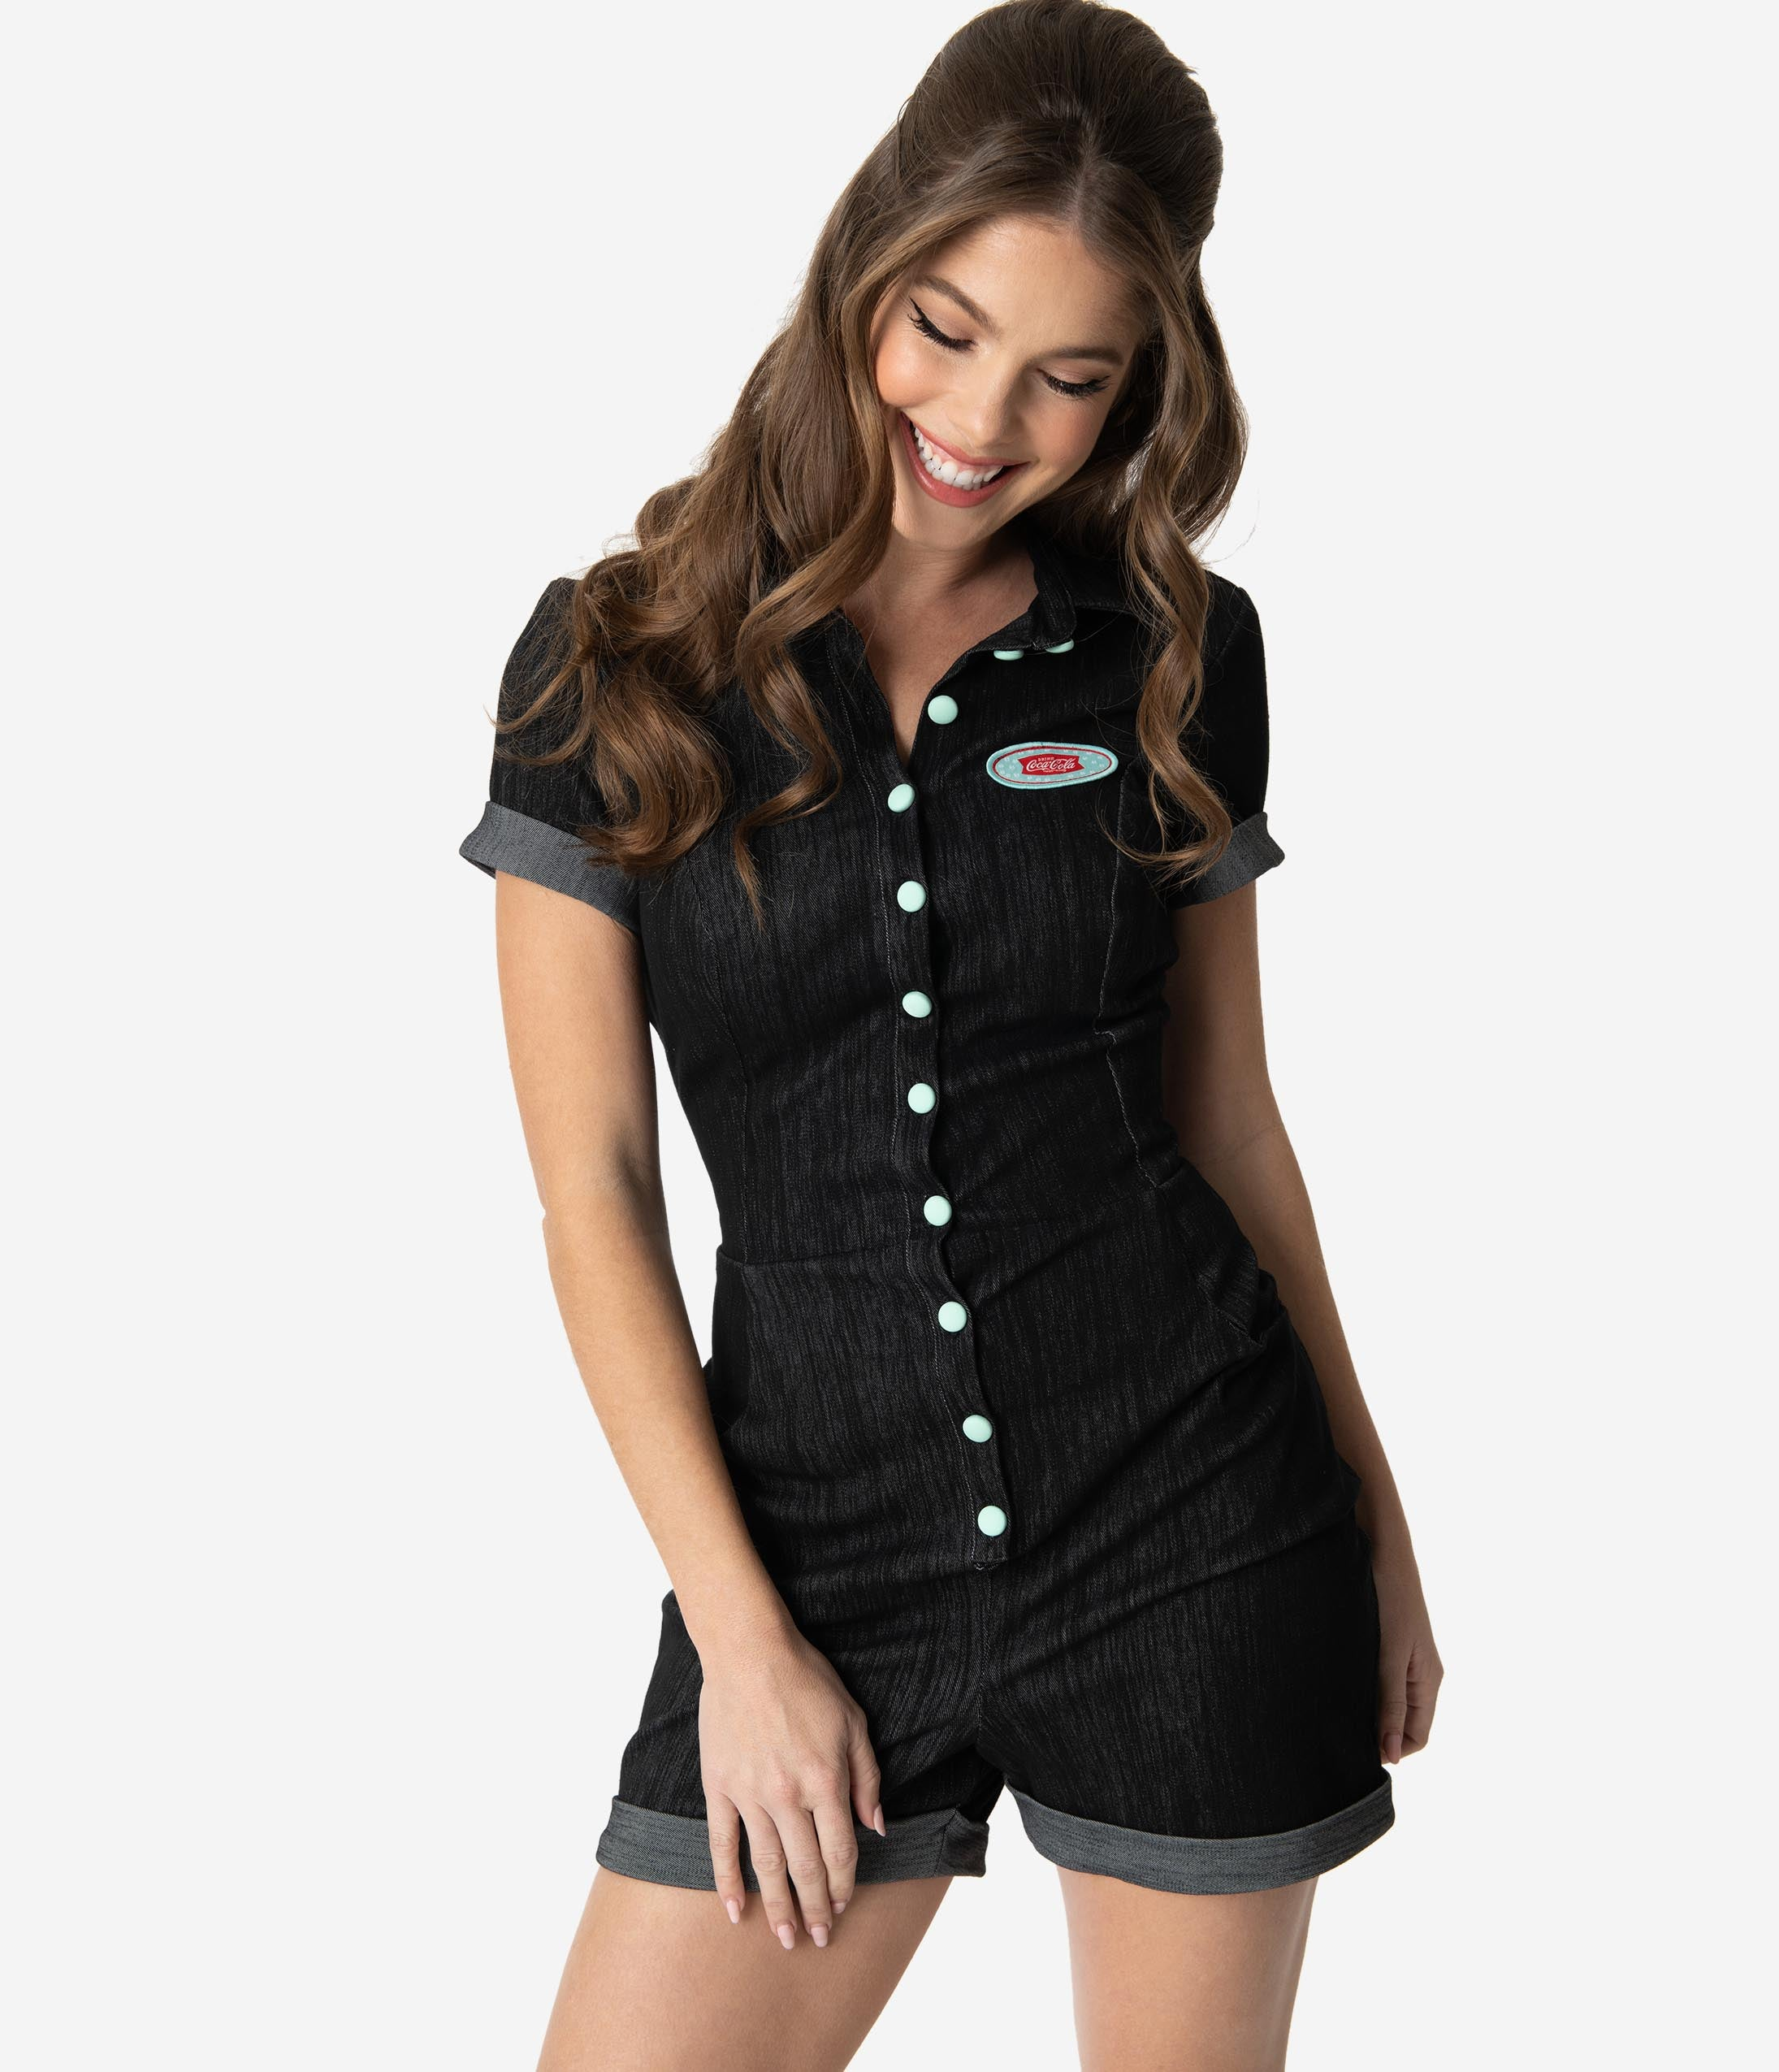 bb247e968053 Coca-Cola Collection by Unique Vintage Black Denim Stretch Sweetie Romper